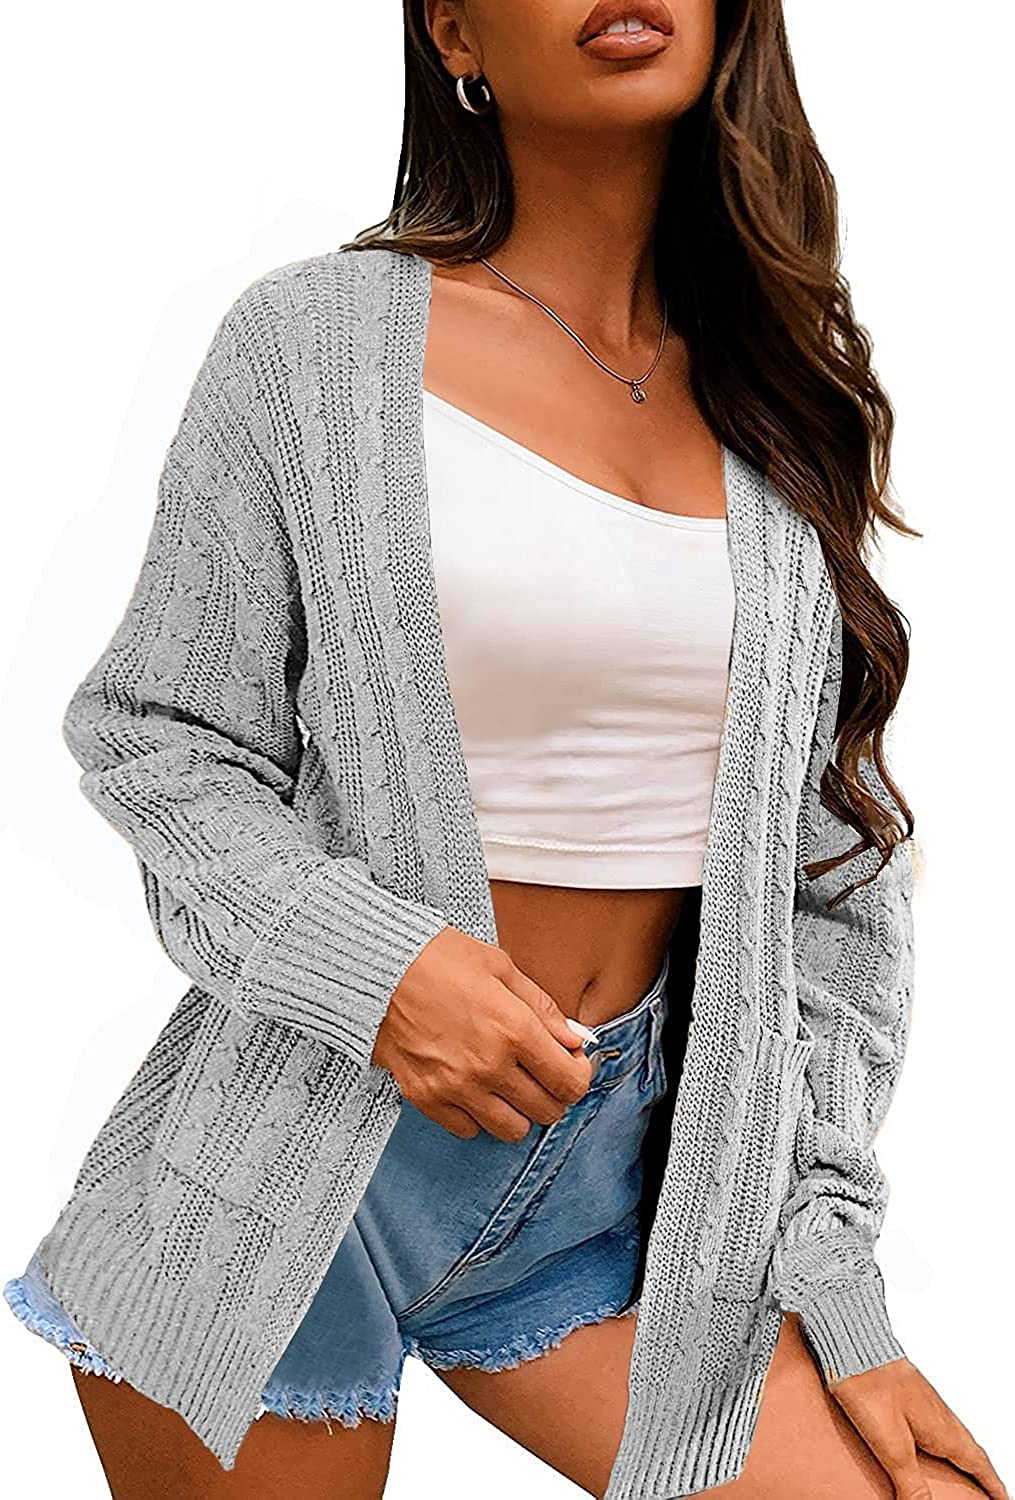 Niceyi Women's Casual Sweater Long Sleeve Soft Chunky Knit Open Front Cardigan Oversized Outwear with Pockets